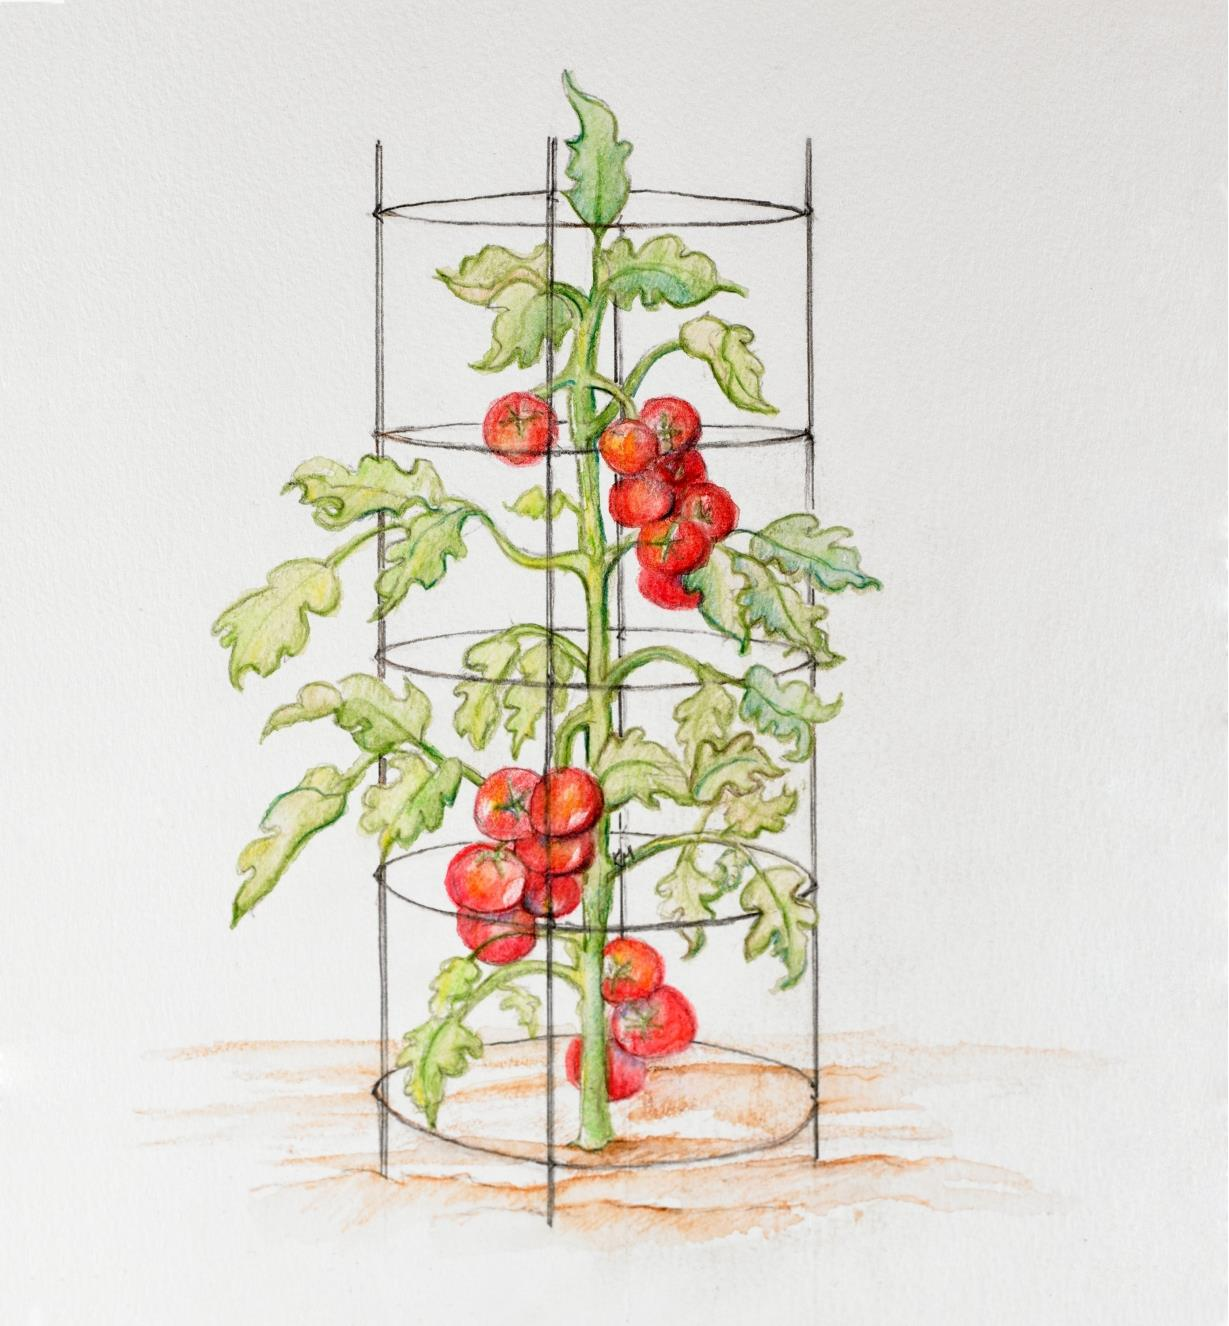 Drawing of a large tomato plant supported by the folding tomato cage